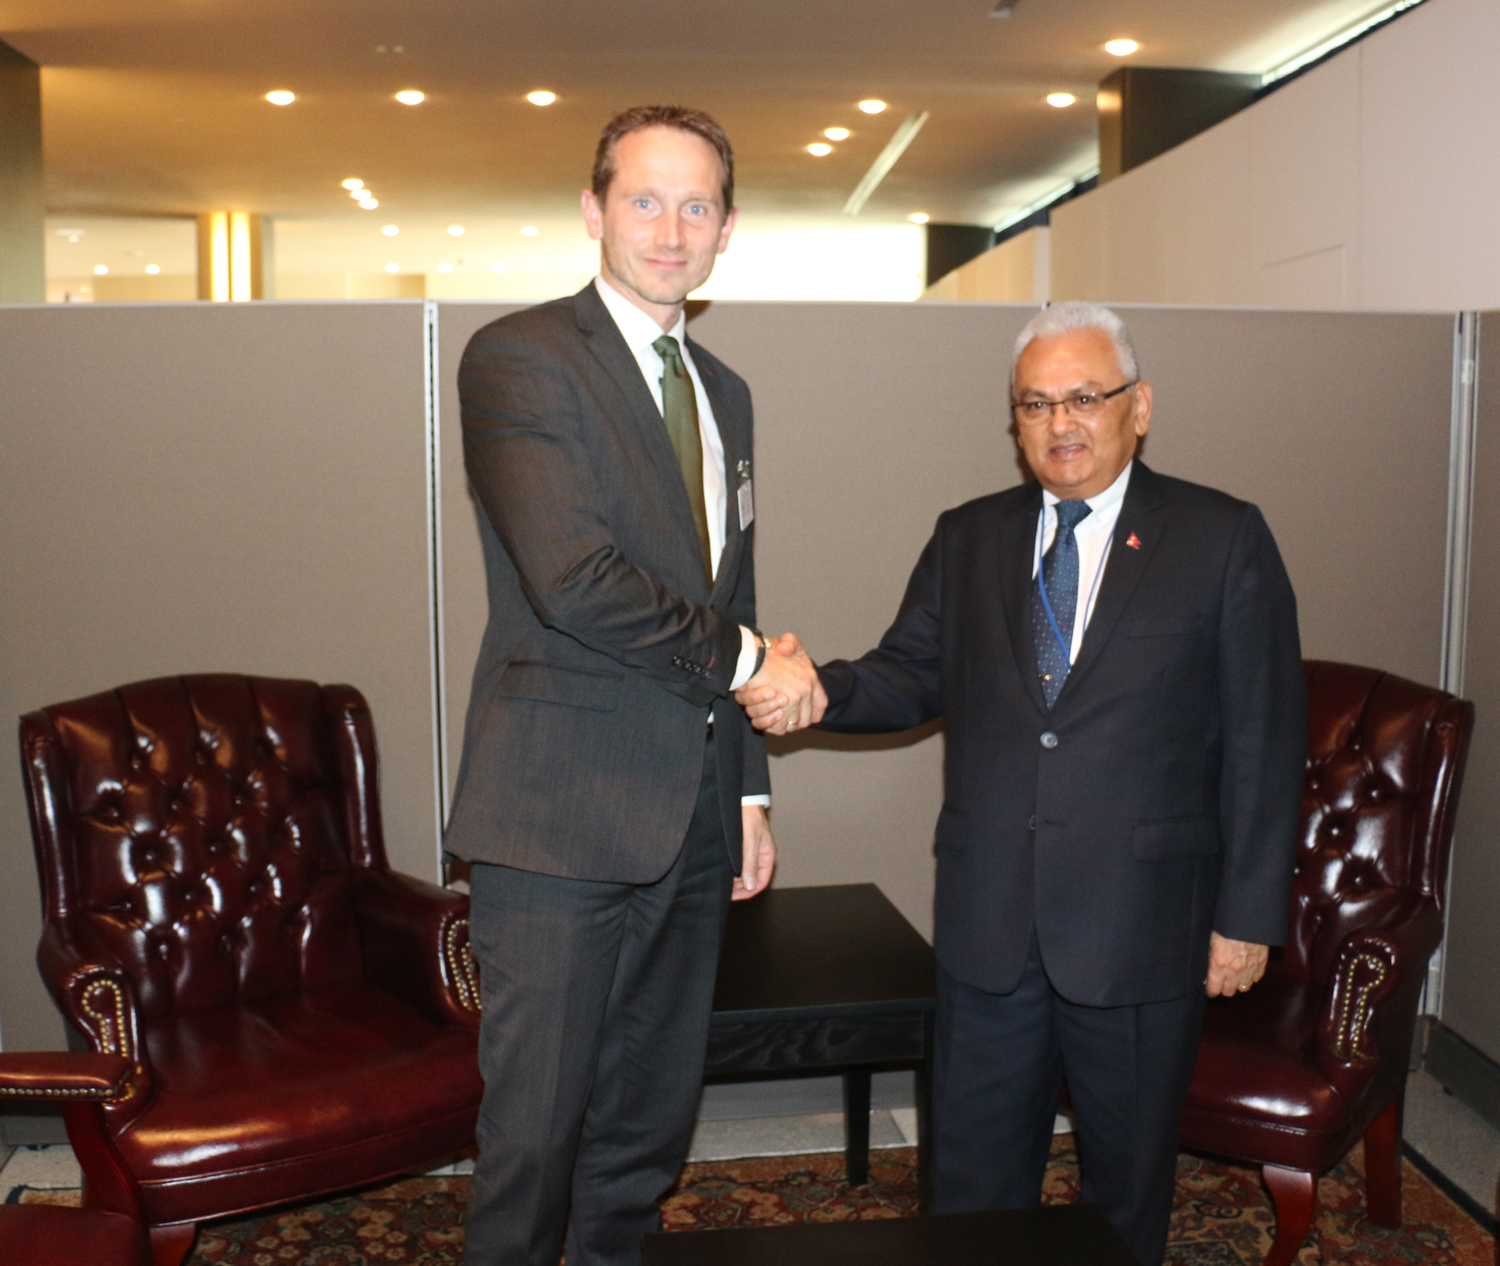 Foreign Minister Mahendra Bahadur Pandey shaking hands with his Danish counterpart Kristain Jensen during the 70th United Nations General Assembly in New York on Sunday, September 26, 2015. Photo: RSS